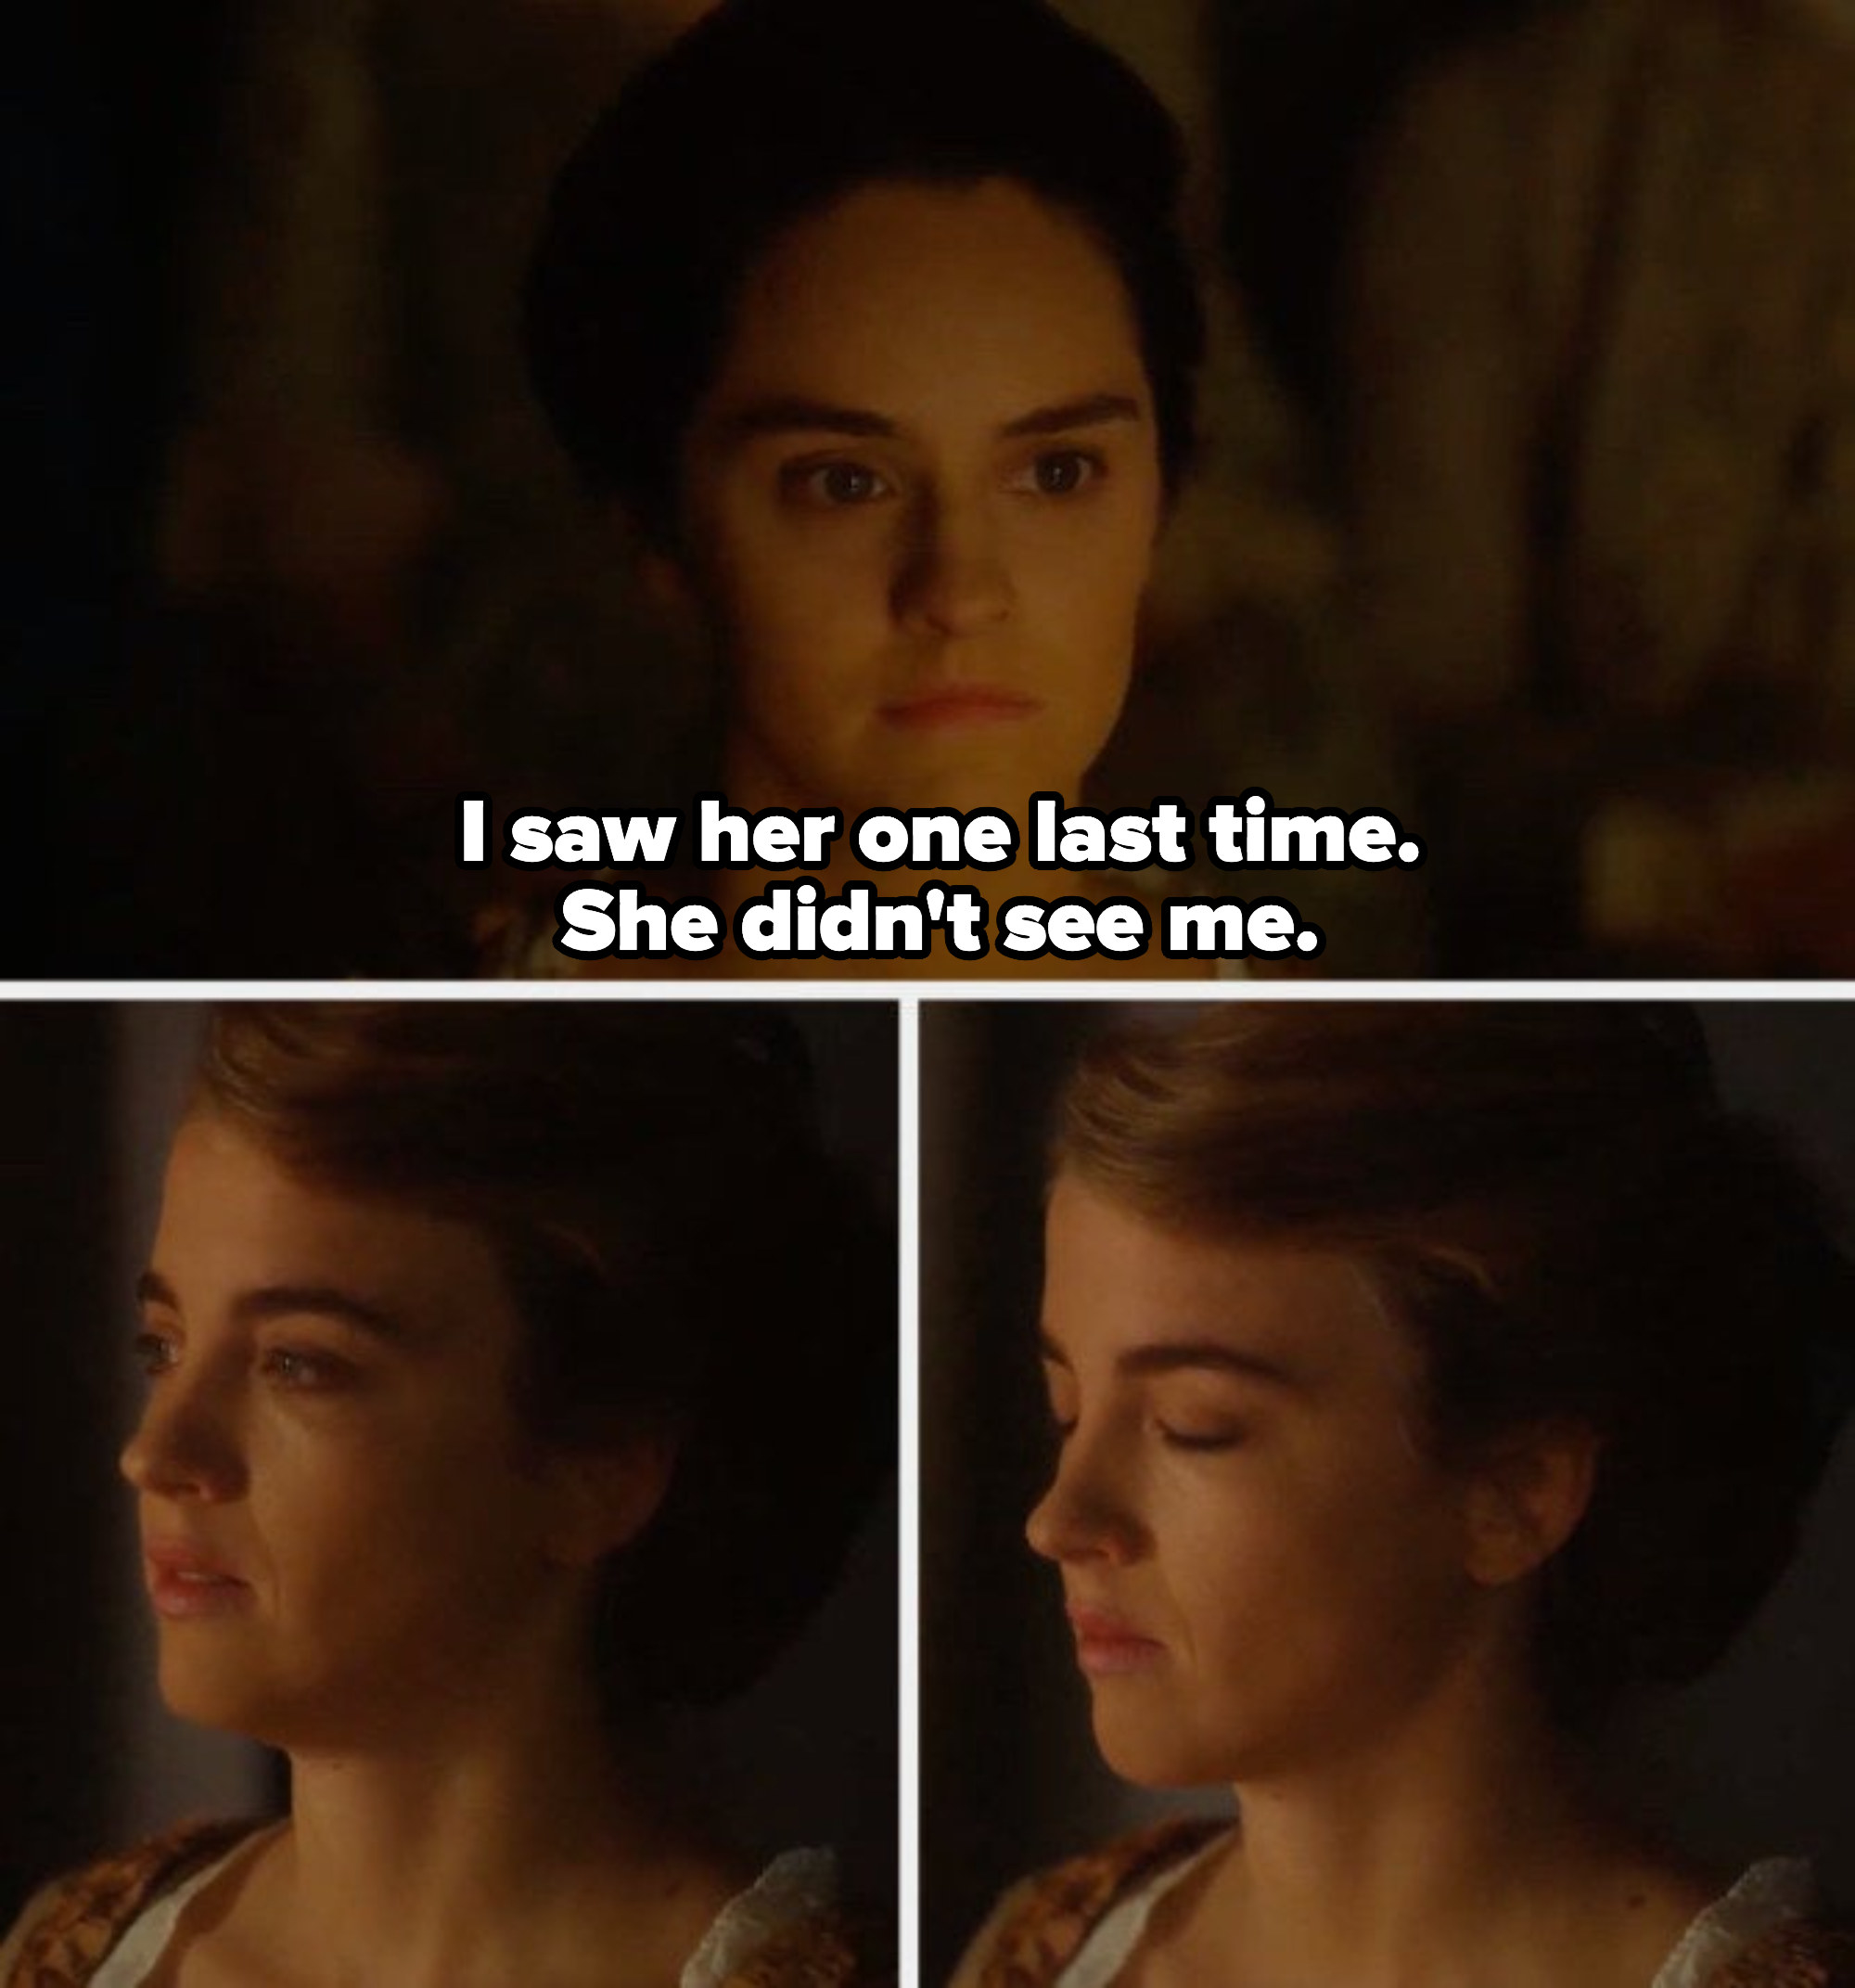 """Marianna watching Héloïse, saying: """"I saw her one last time. She didn't see me"""""""